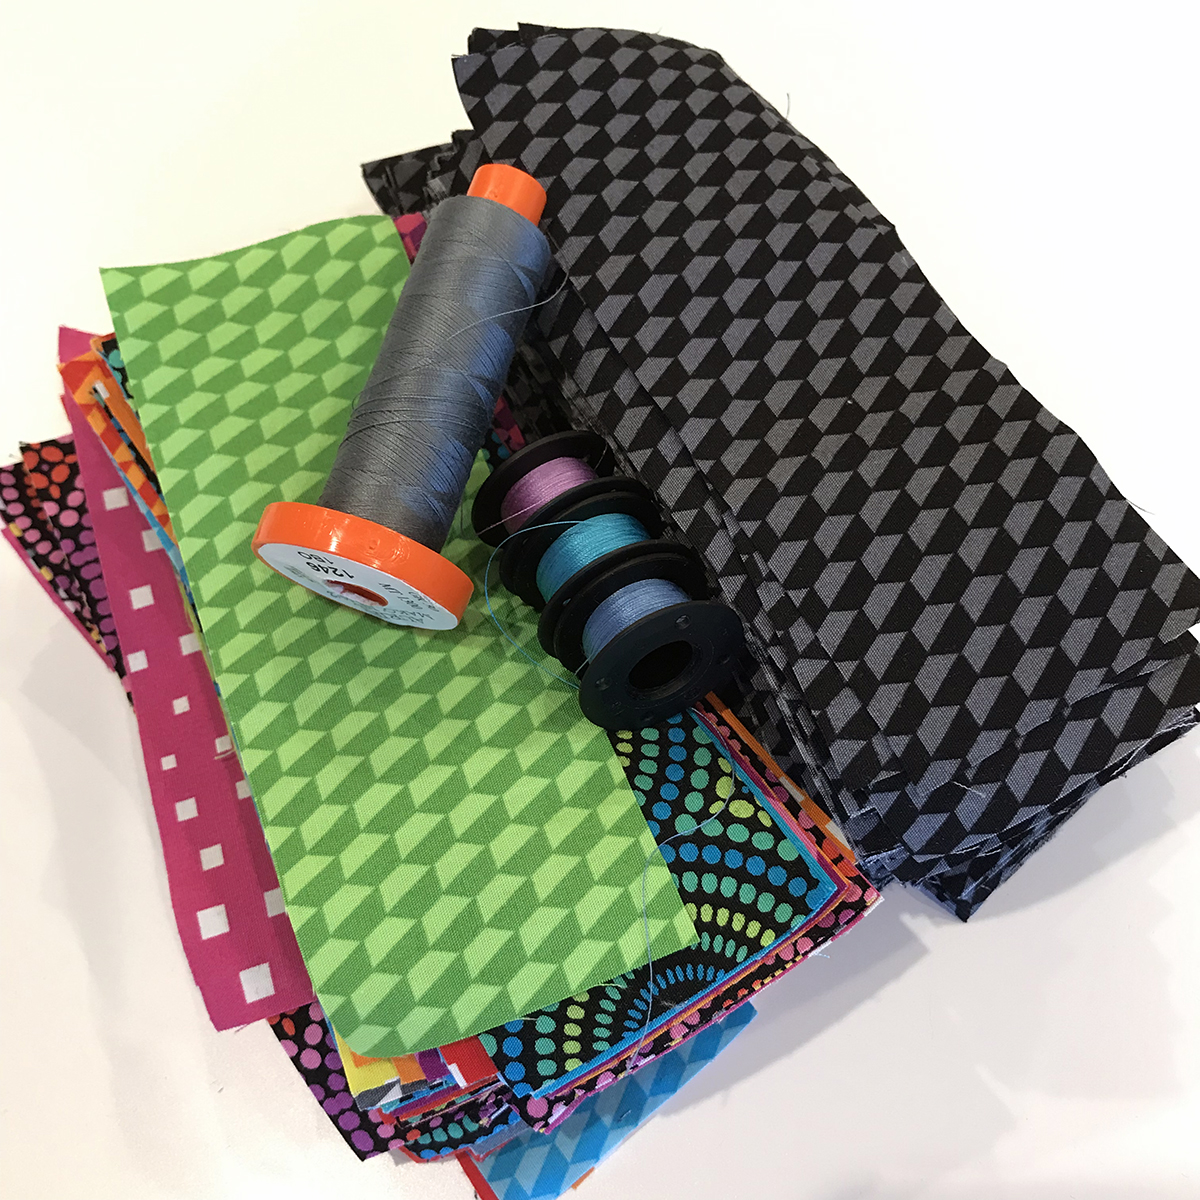 Aurifil Thread and Geo Pop fabric